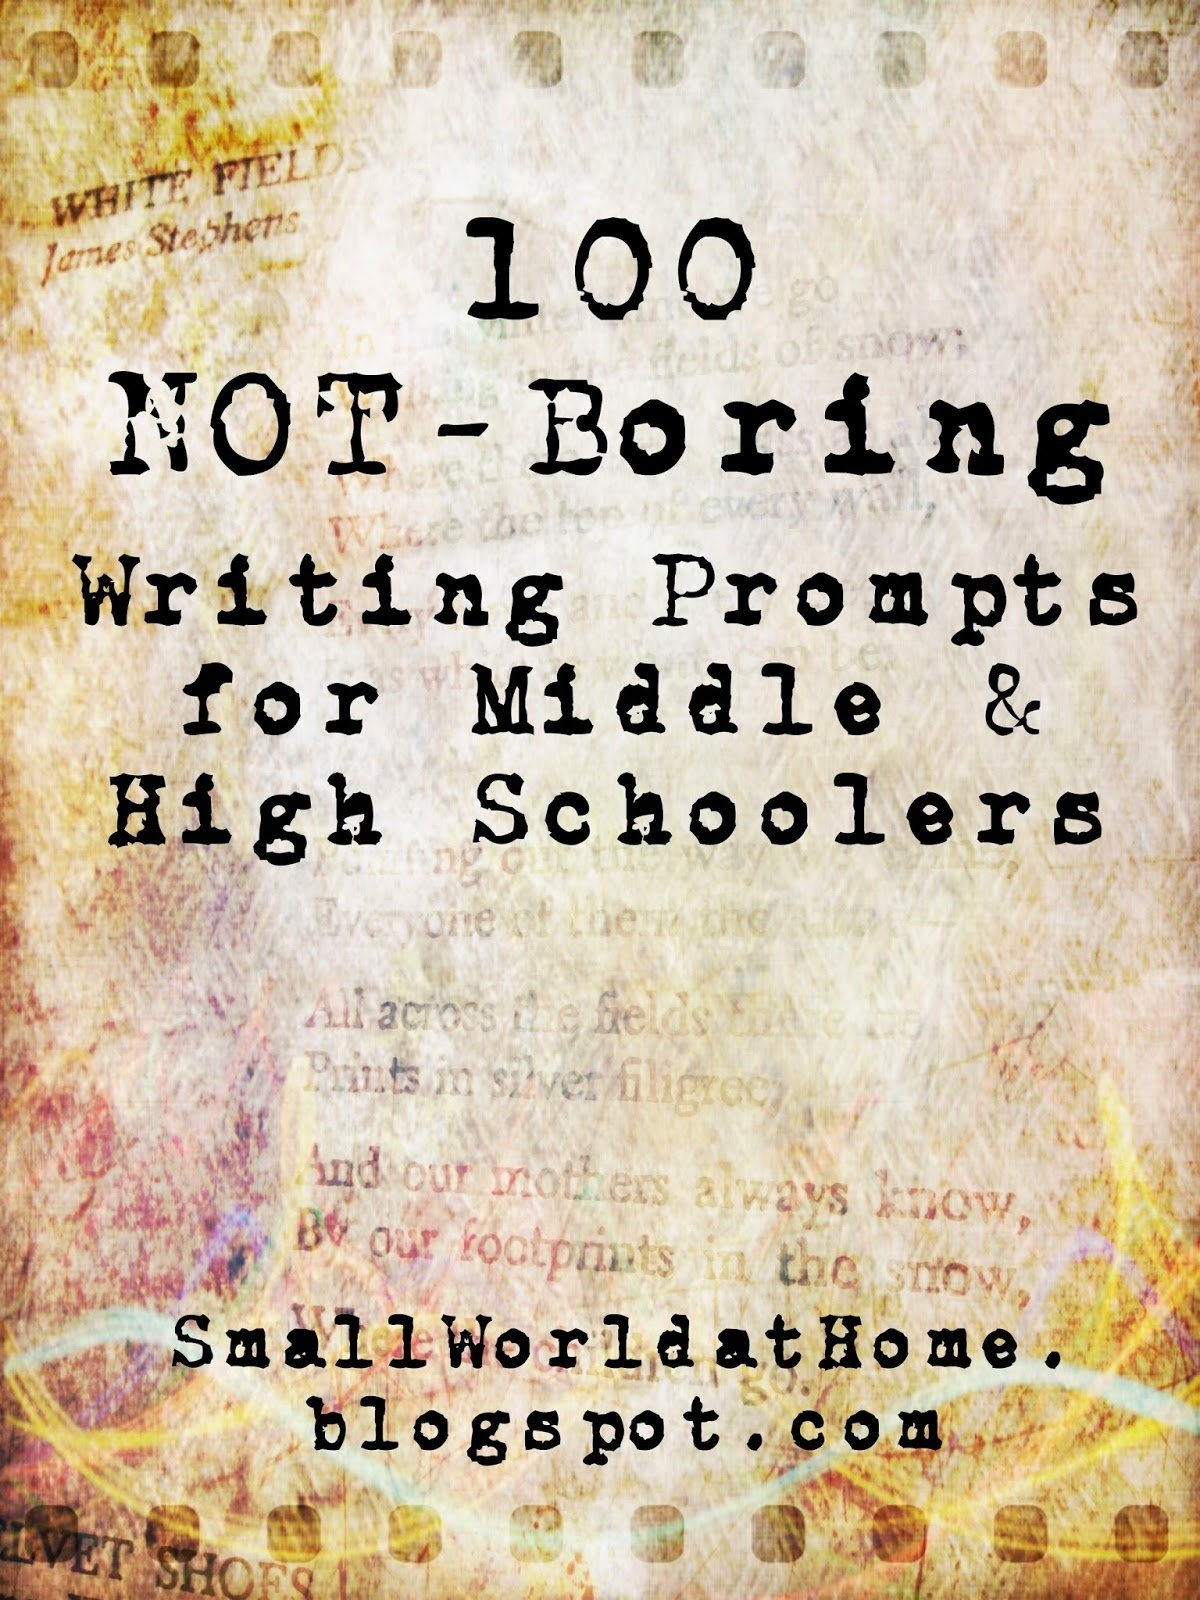 smallworld: 100 not-boring writing prompts for middle- and high